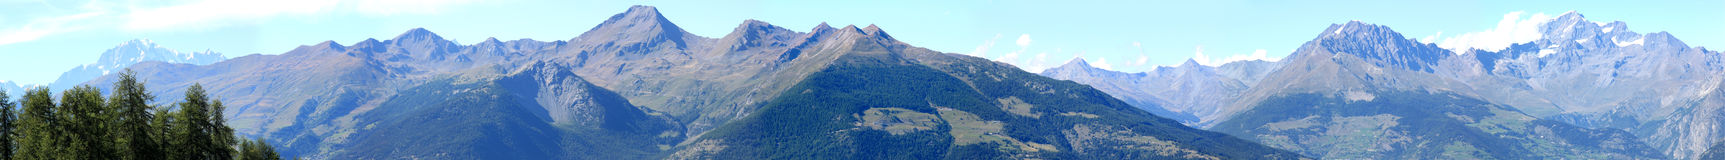 Mountains of National Park Gran Paradiso, Italy Royalty Free Stock Image